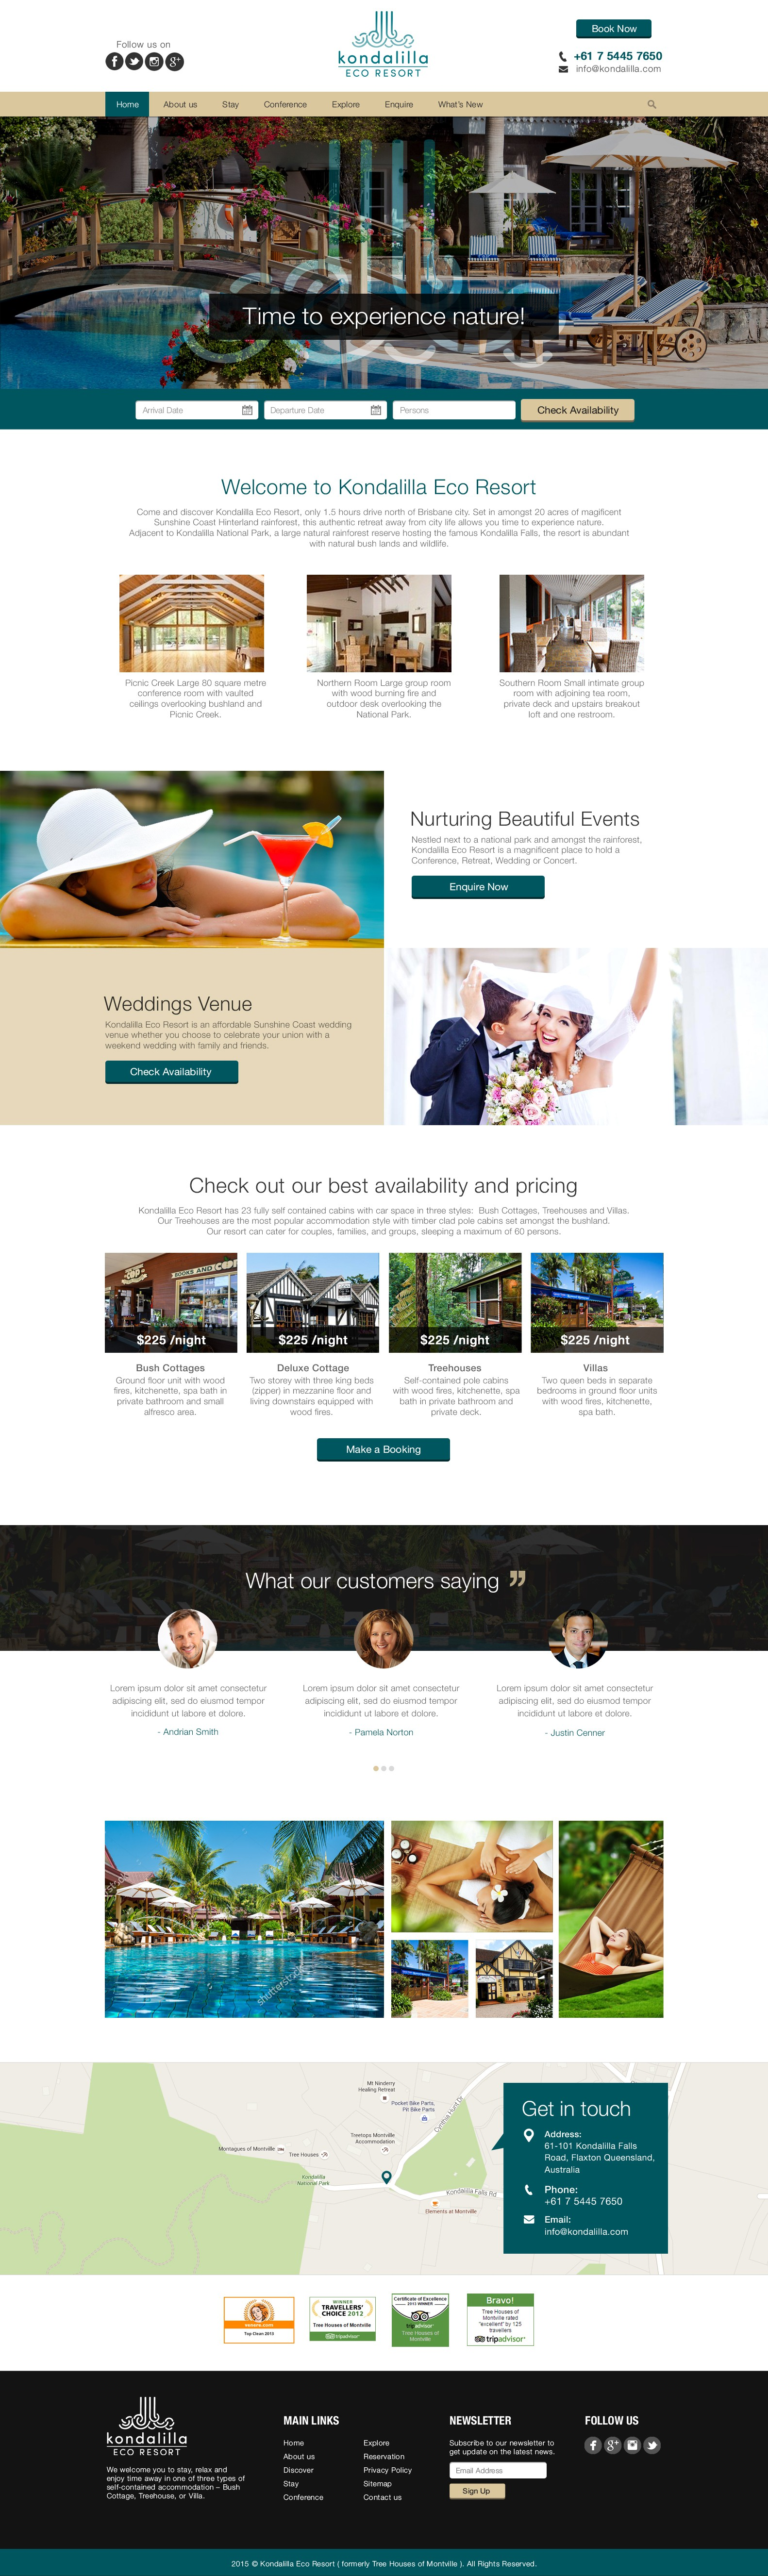 Create a New website design for new business Kondalilla Eco Resort, but old hotel